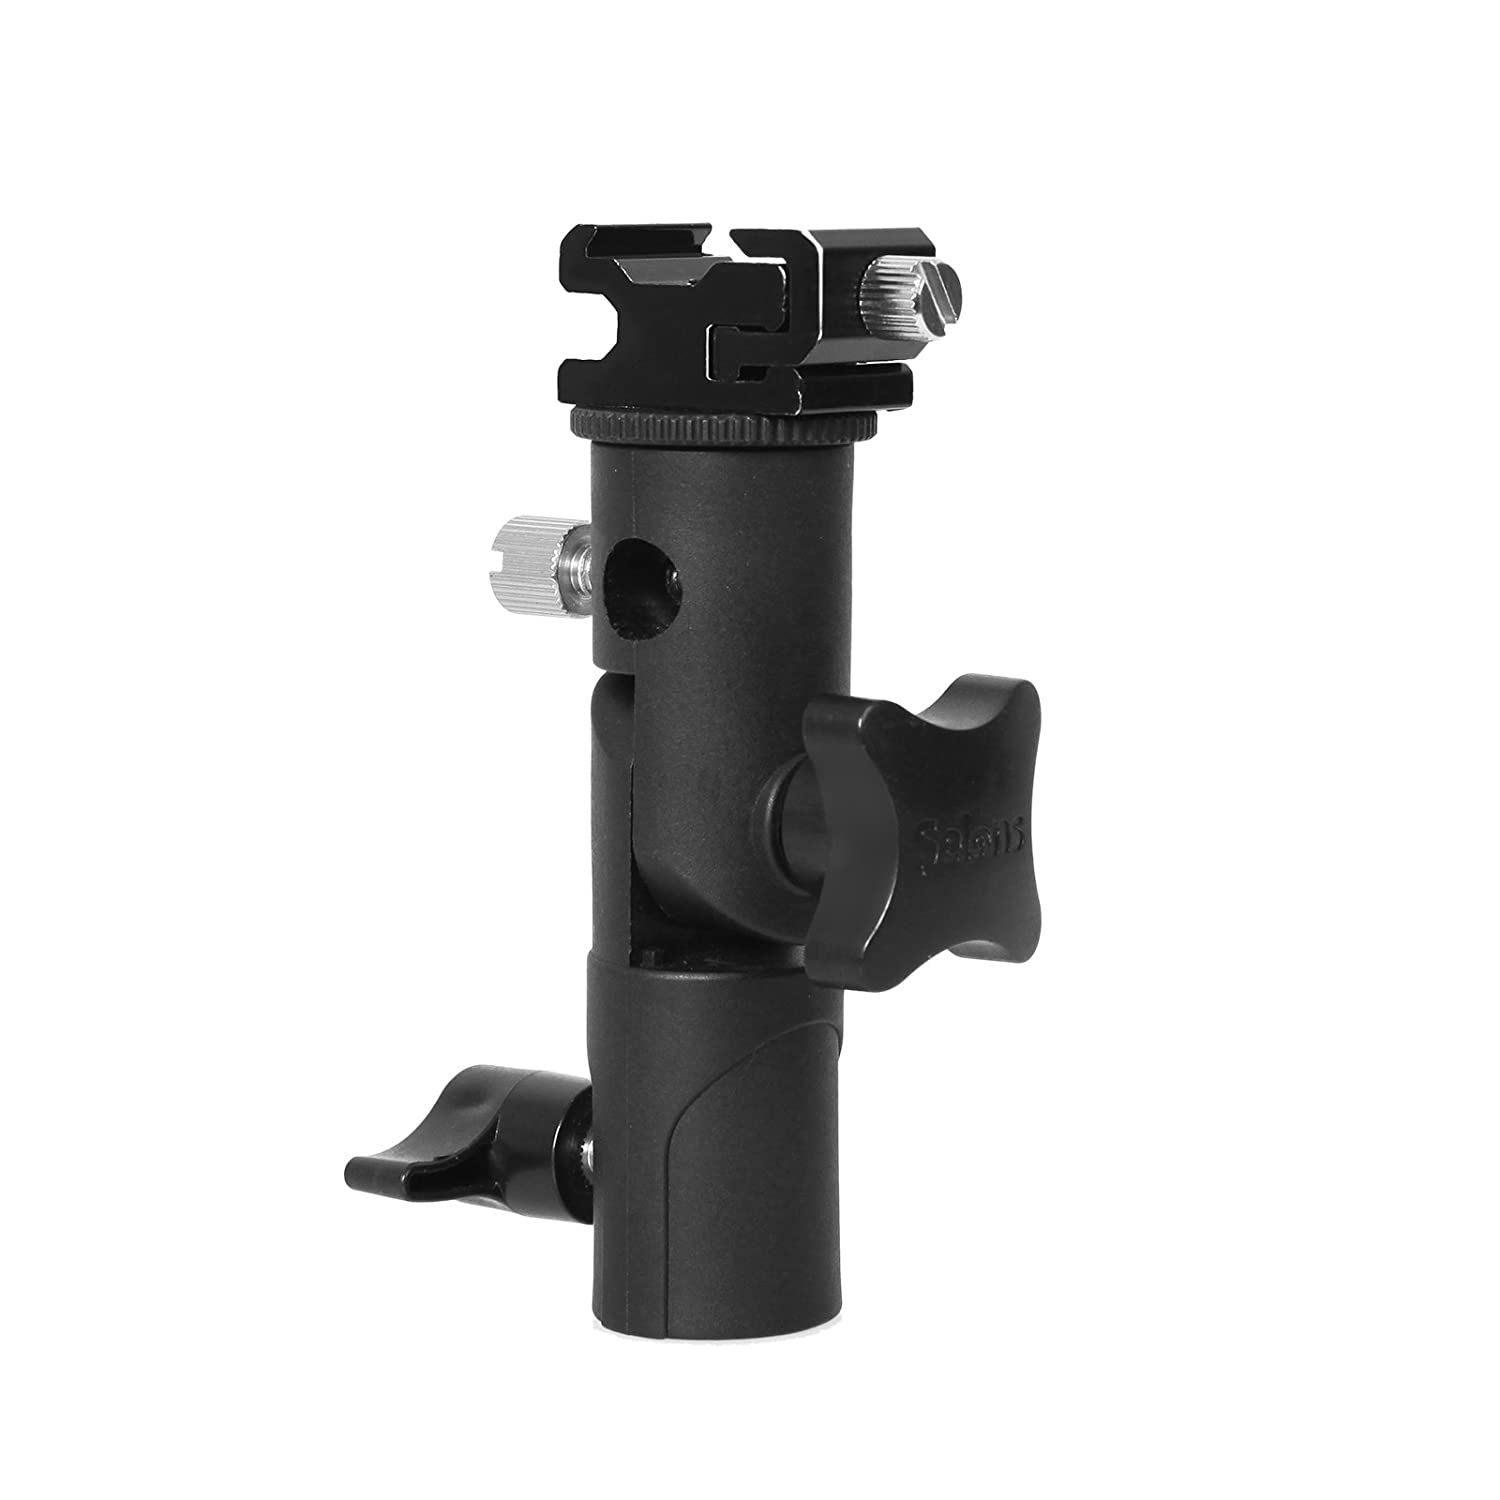 Selens Reflector Clamp Clip Holder Speedlite Hot Shoe Bracket Stand with 1//4 /& 3//8 Screw Adapter for Photo Studio Reflector Light Stand Umbrella Backdrop Stand